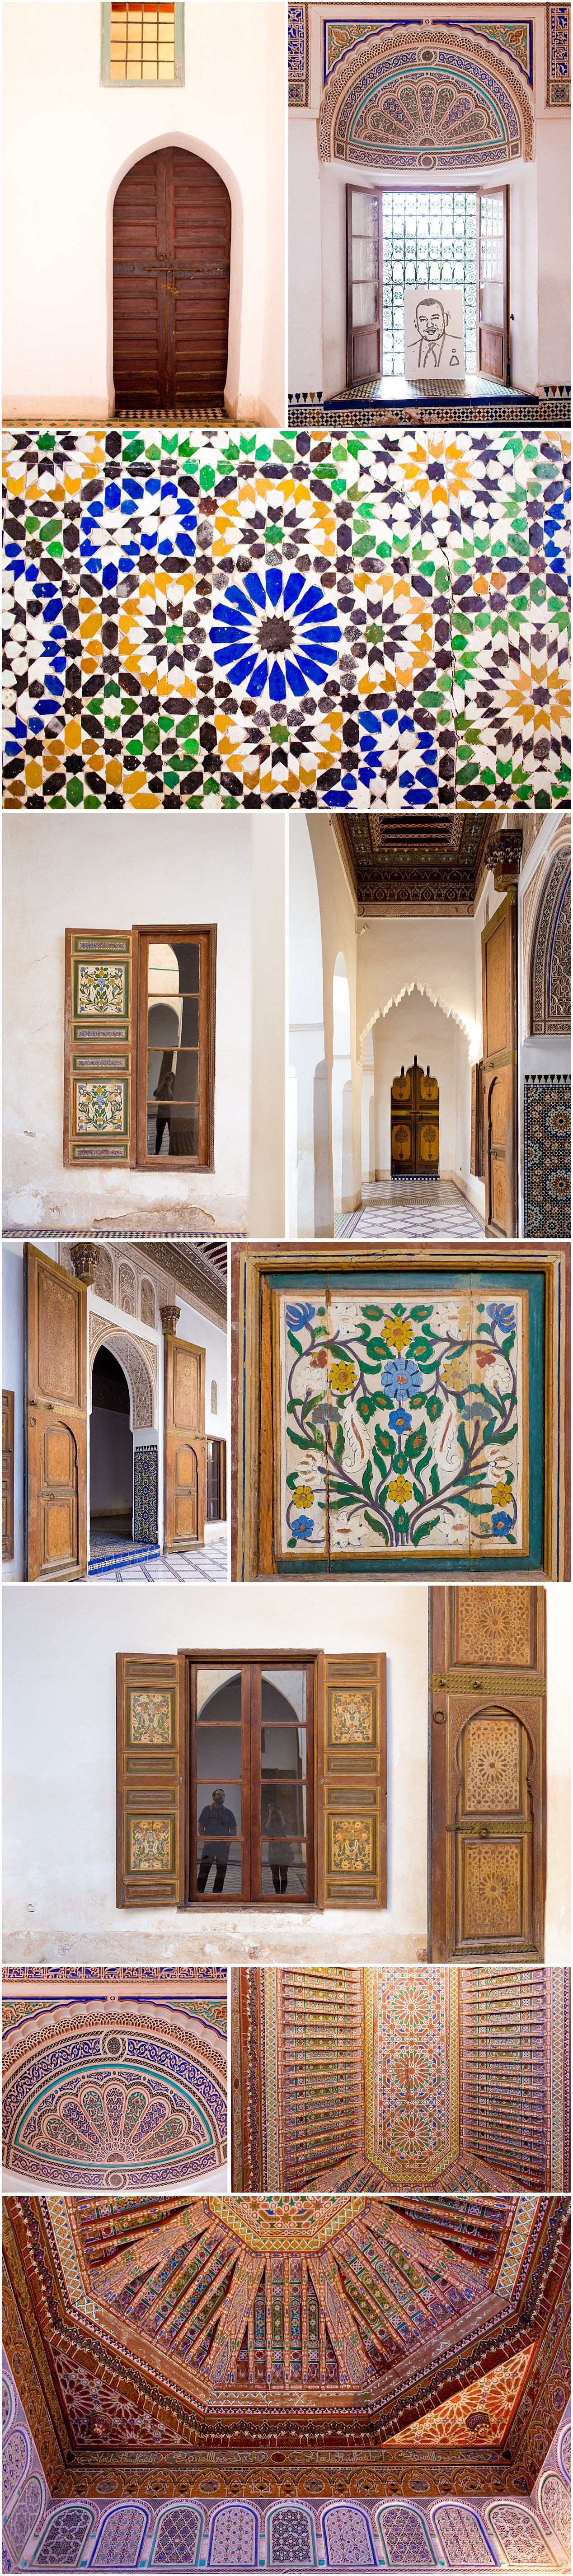 Morocco travel blog - intricate architectural details at Bahia Palace